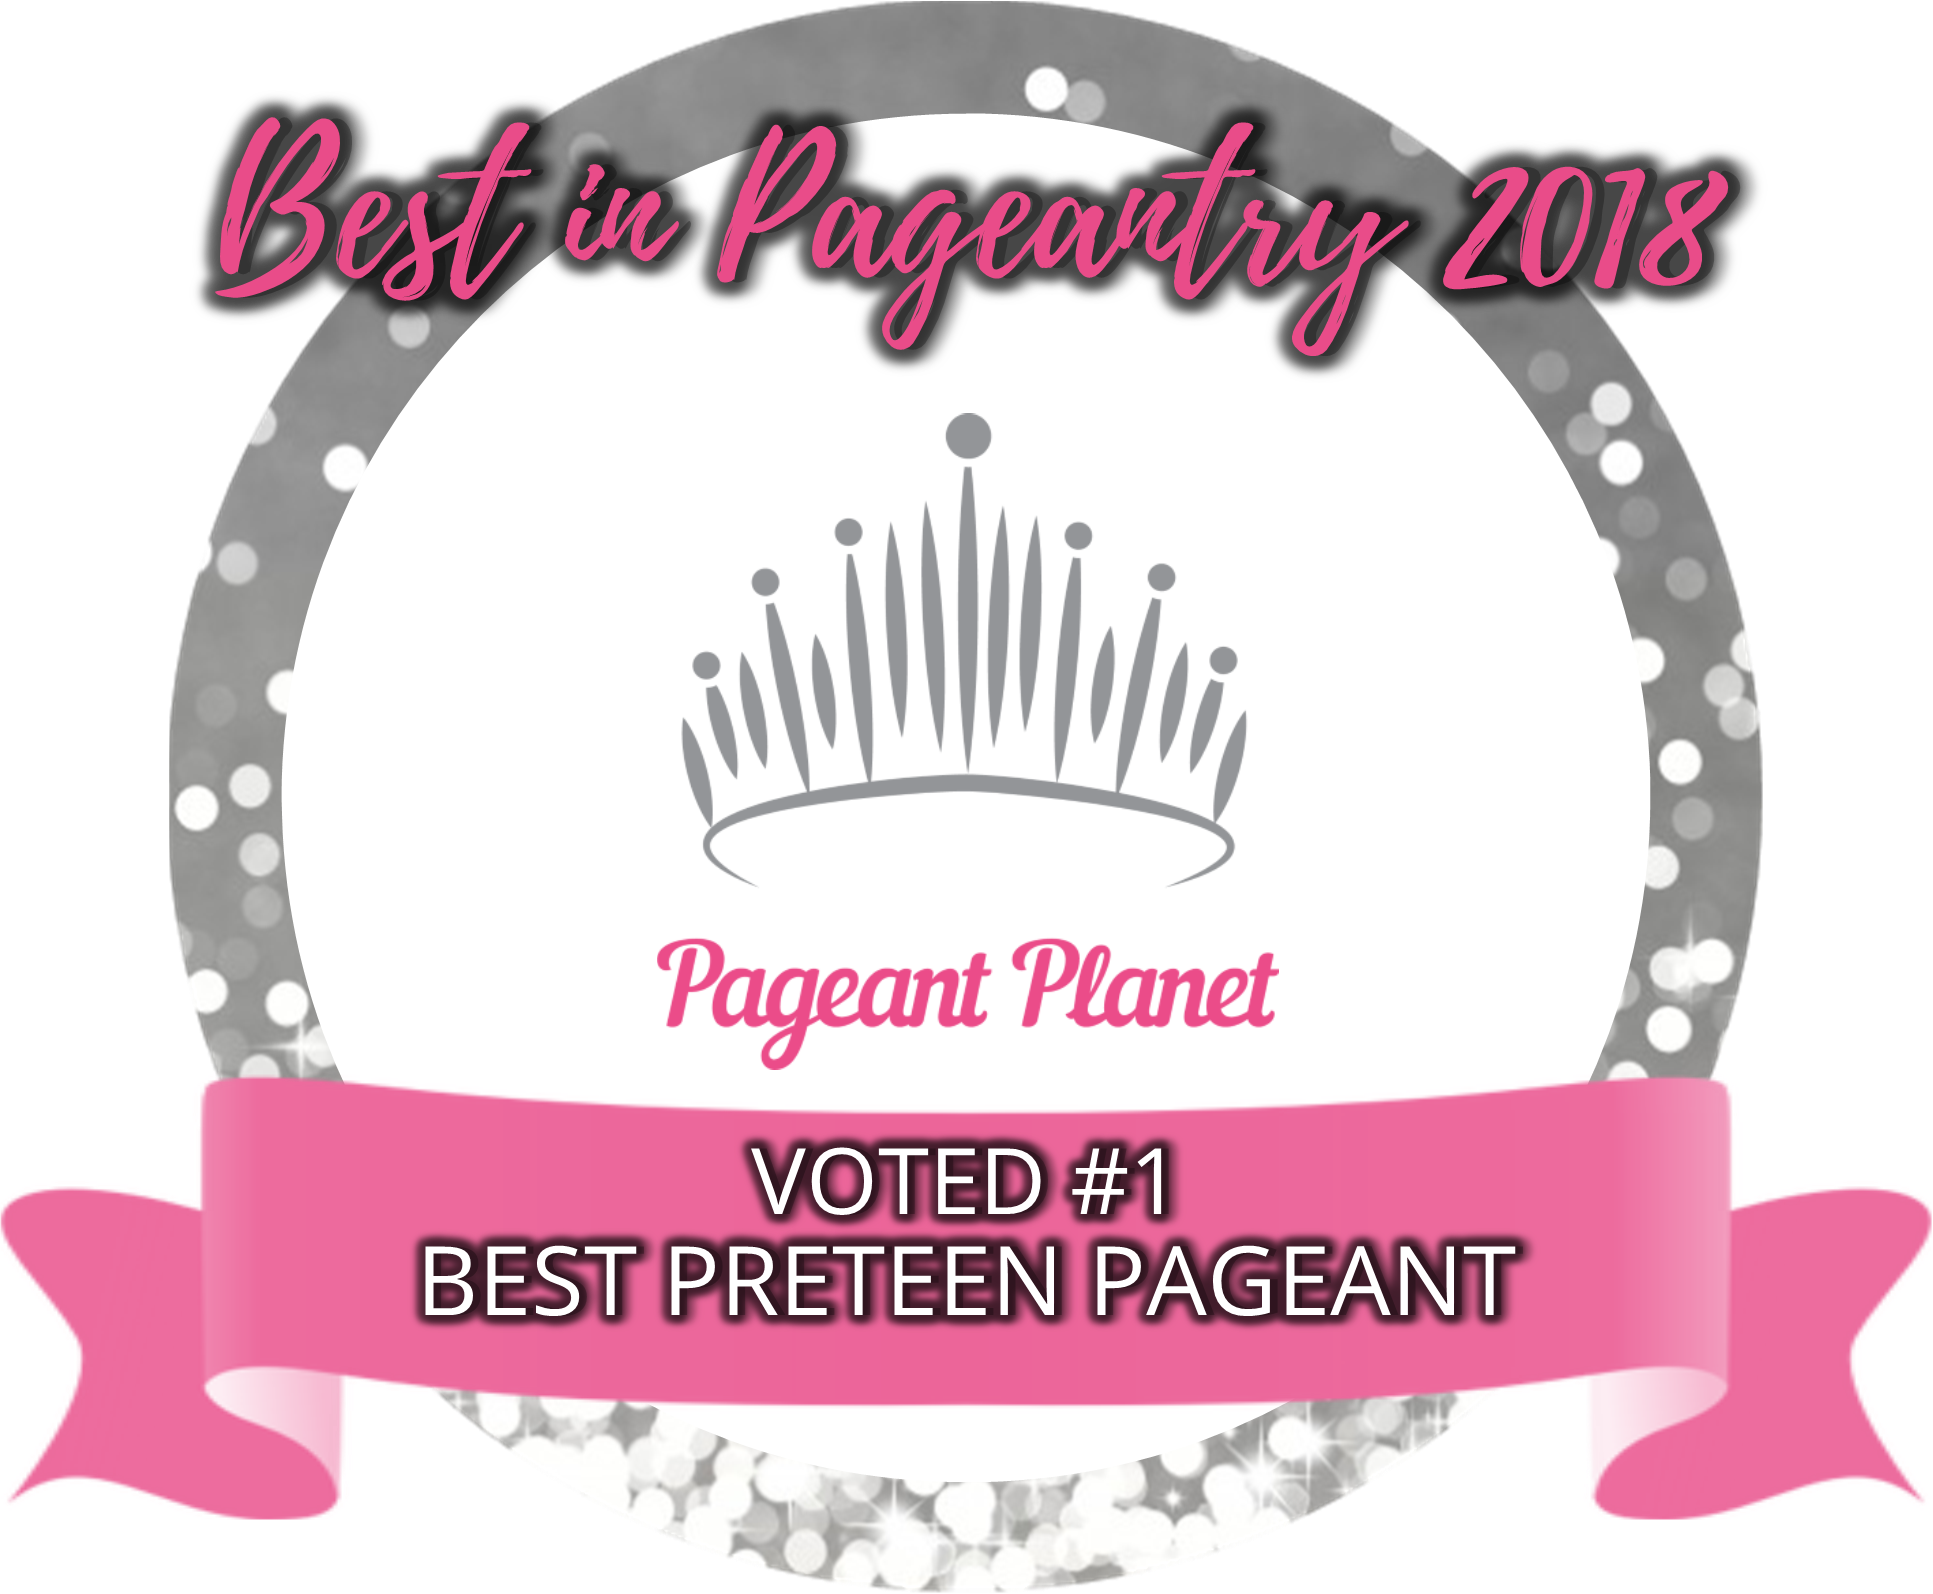 #1 Best Preteen Pageant of 2018